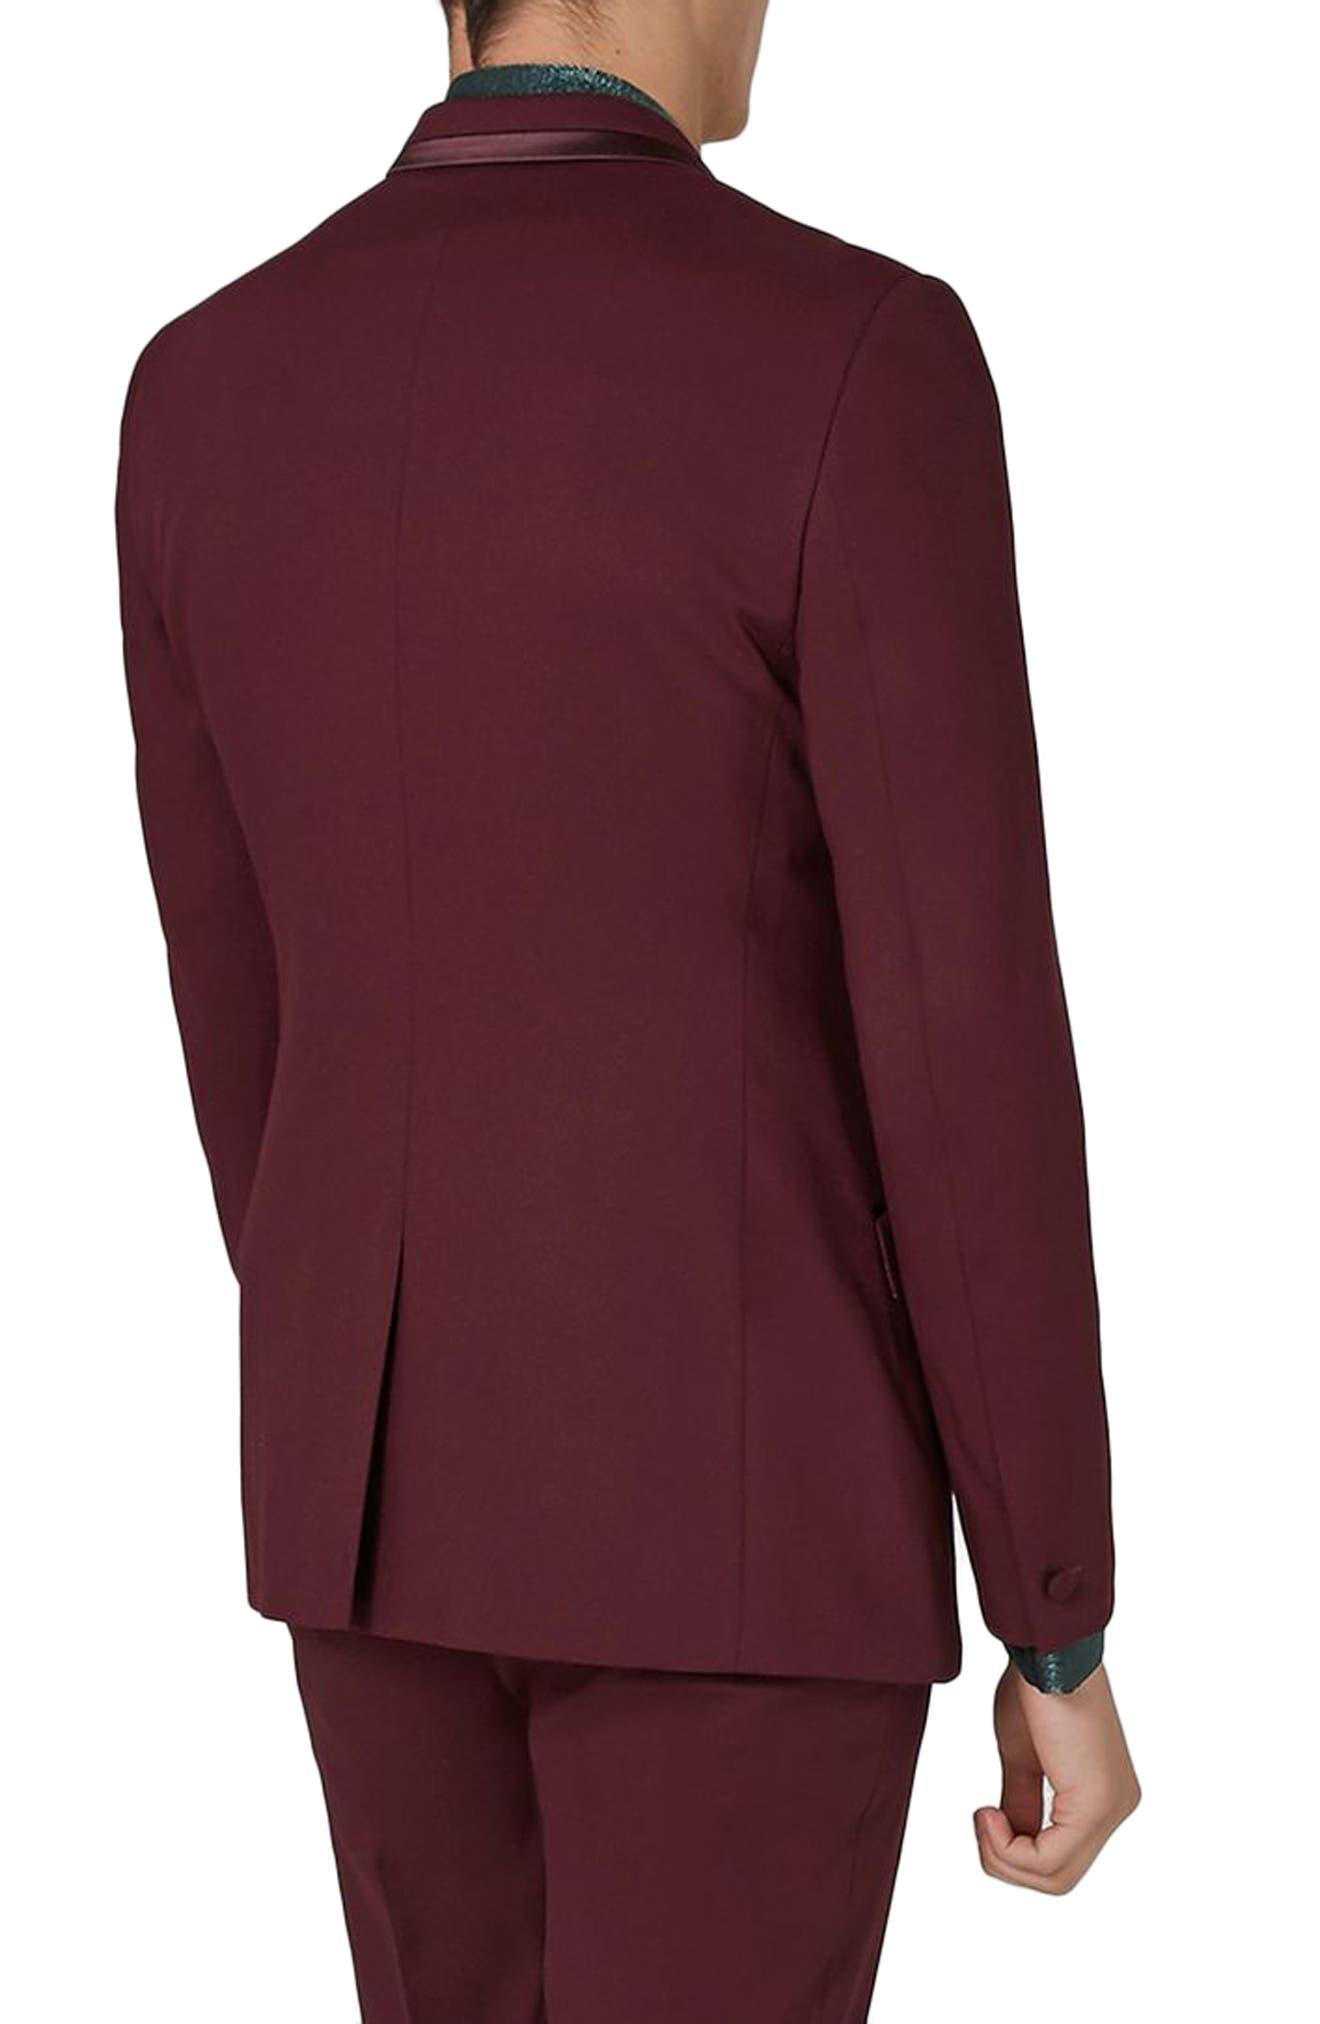 Skinny Fit Burgundy Tuxedo Jacket,                             Alternate thumbnail 2, color,